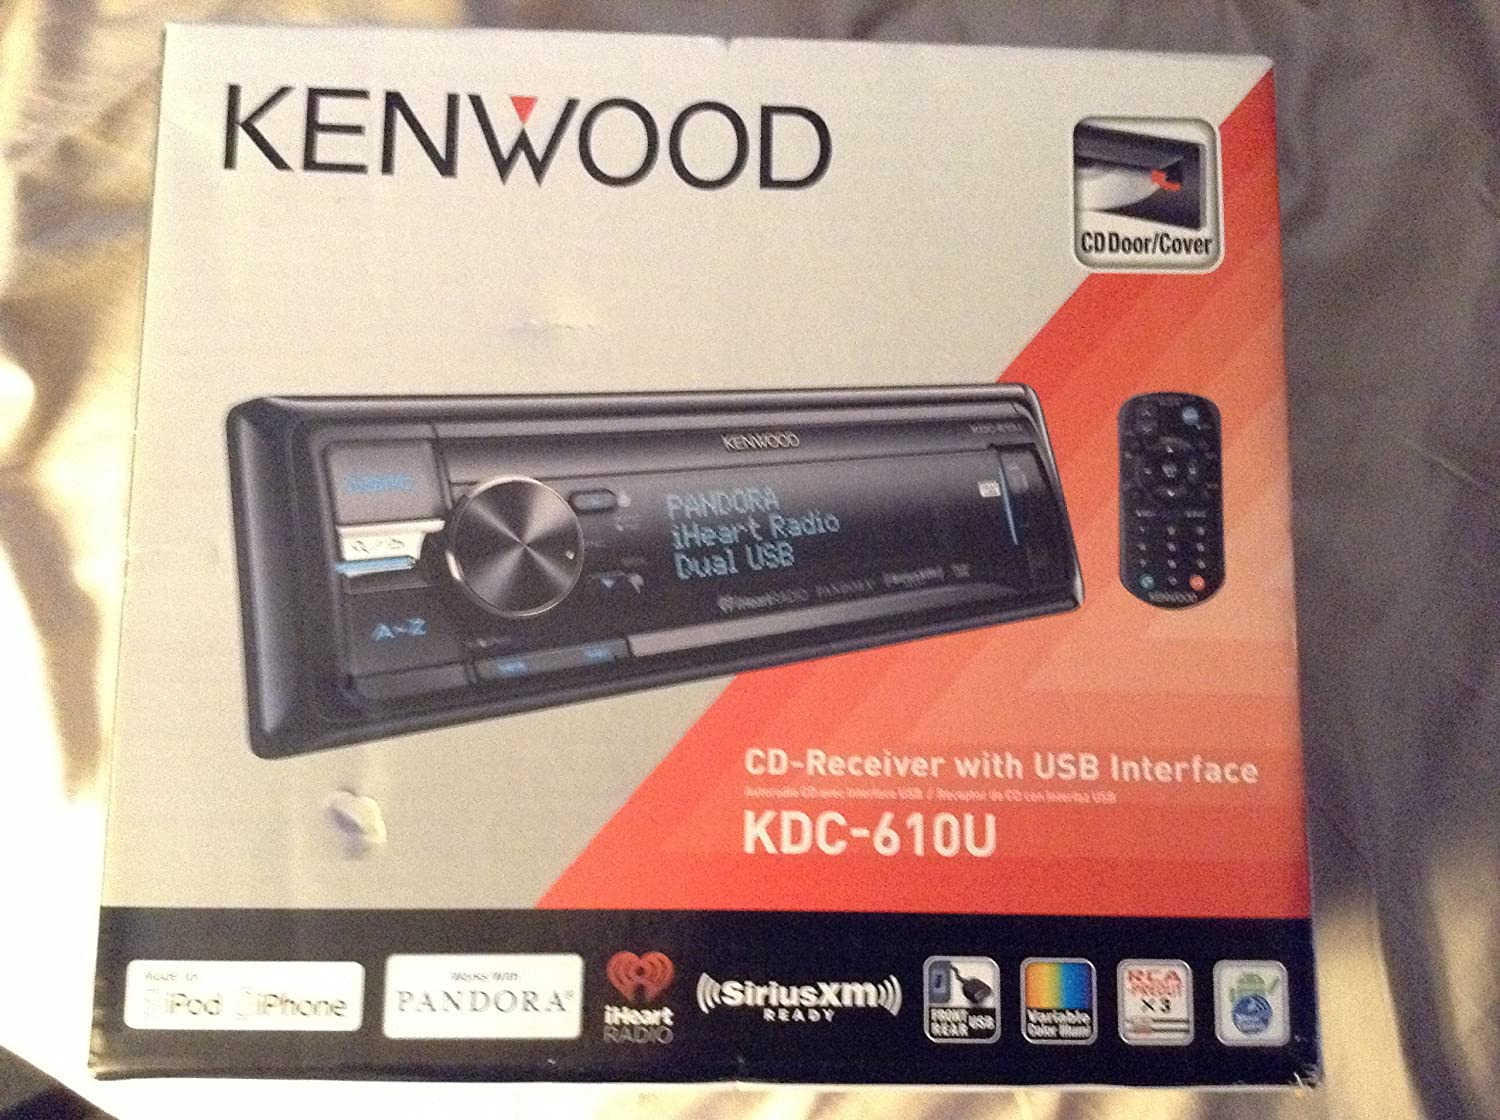 91ms9JUyklL._SL1500_ amazon com kenwood kdc 610u cd player with dual usb multi color kenwood kdc 610u wiring diagram at nearapp.co